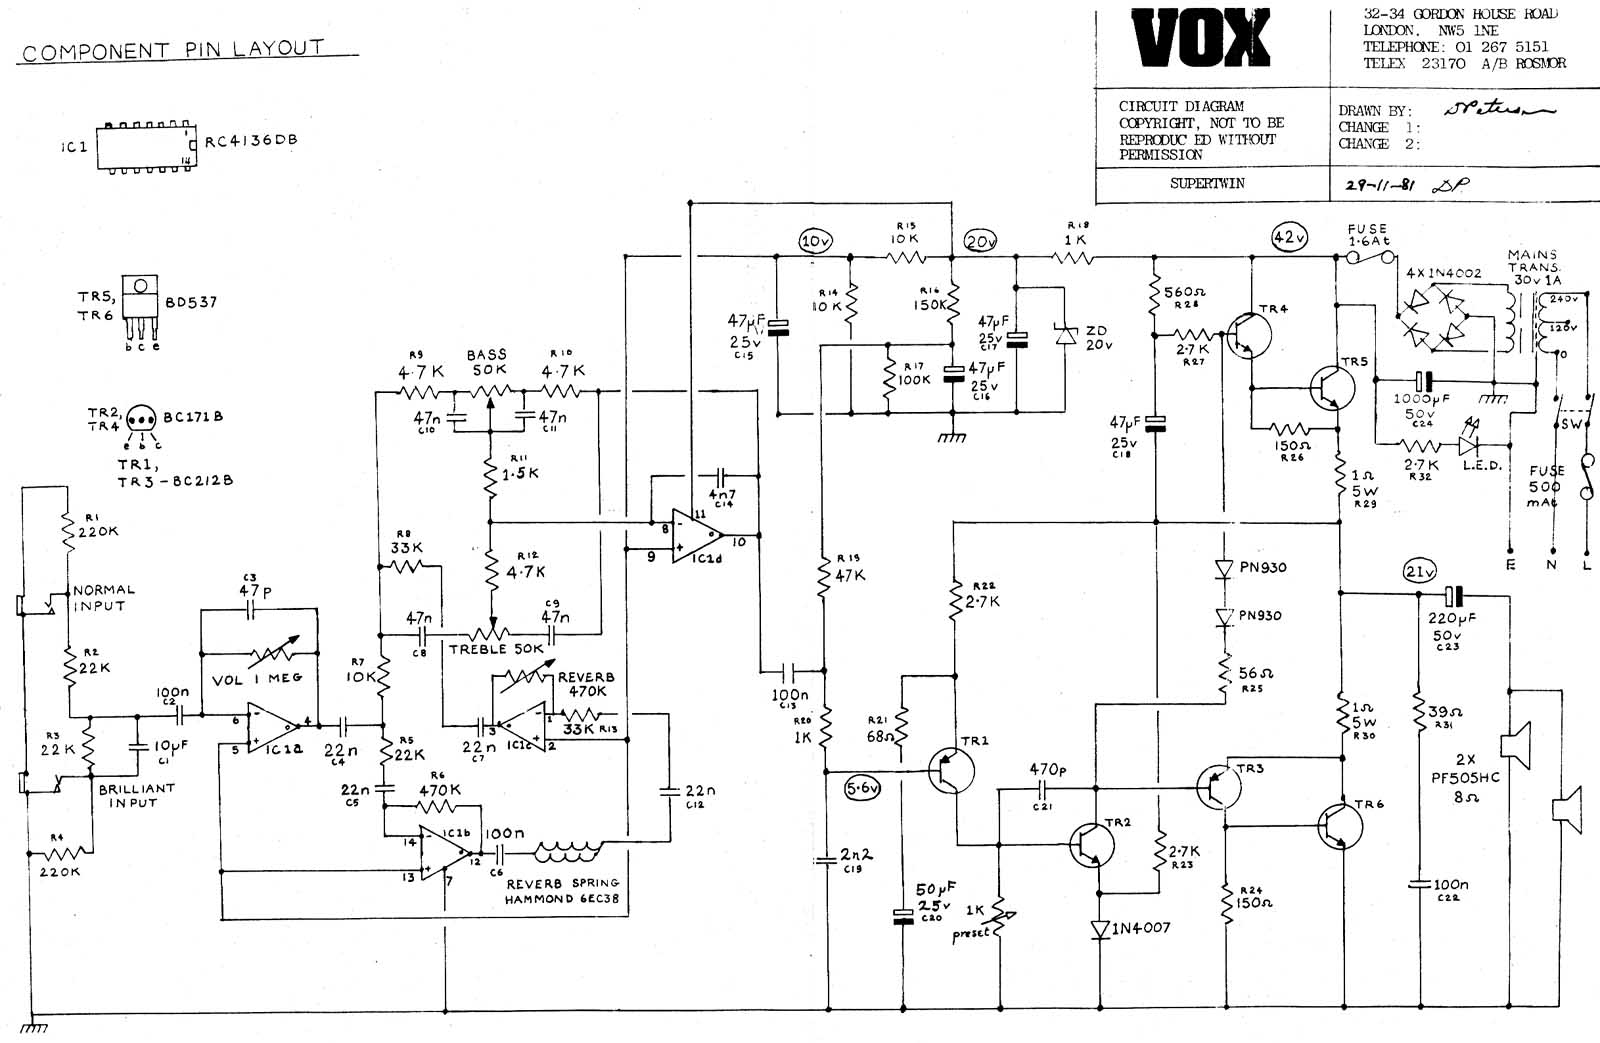 Vox Amp Schematic Wiring Diagrams Pathfinder 10 Cable Harness And Setting Diagram Vintage Circuit Rh Korguk Com Beatle